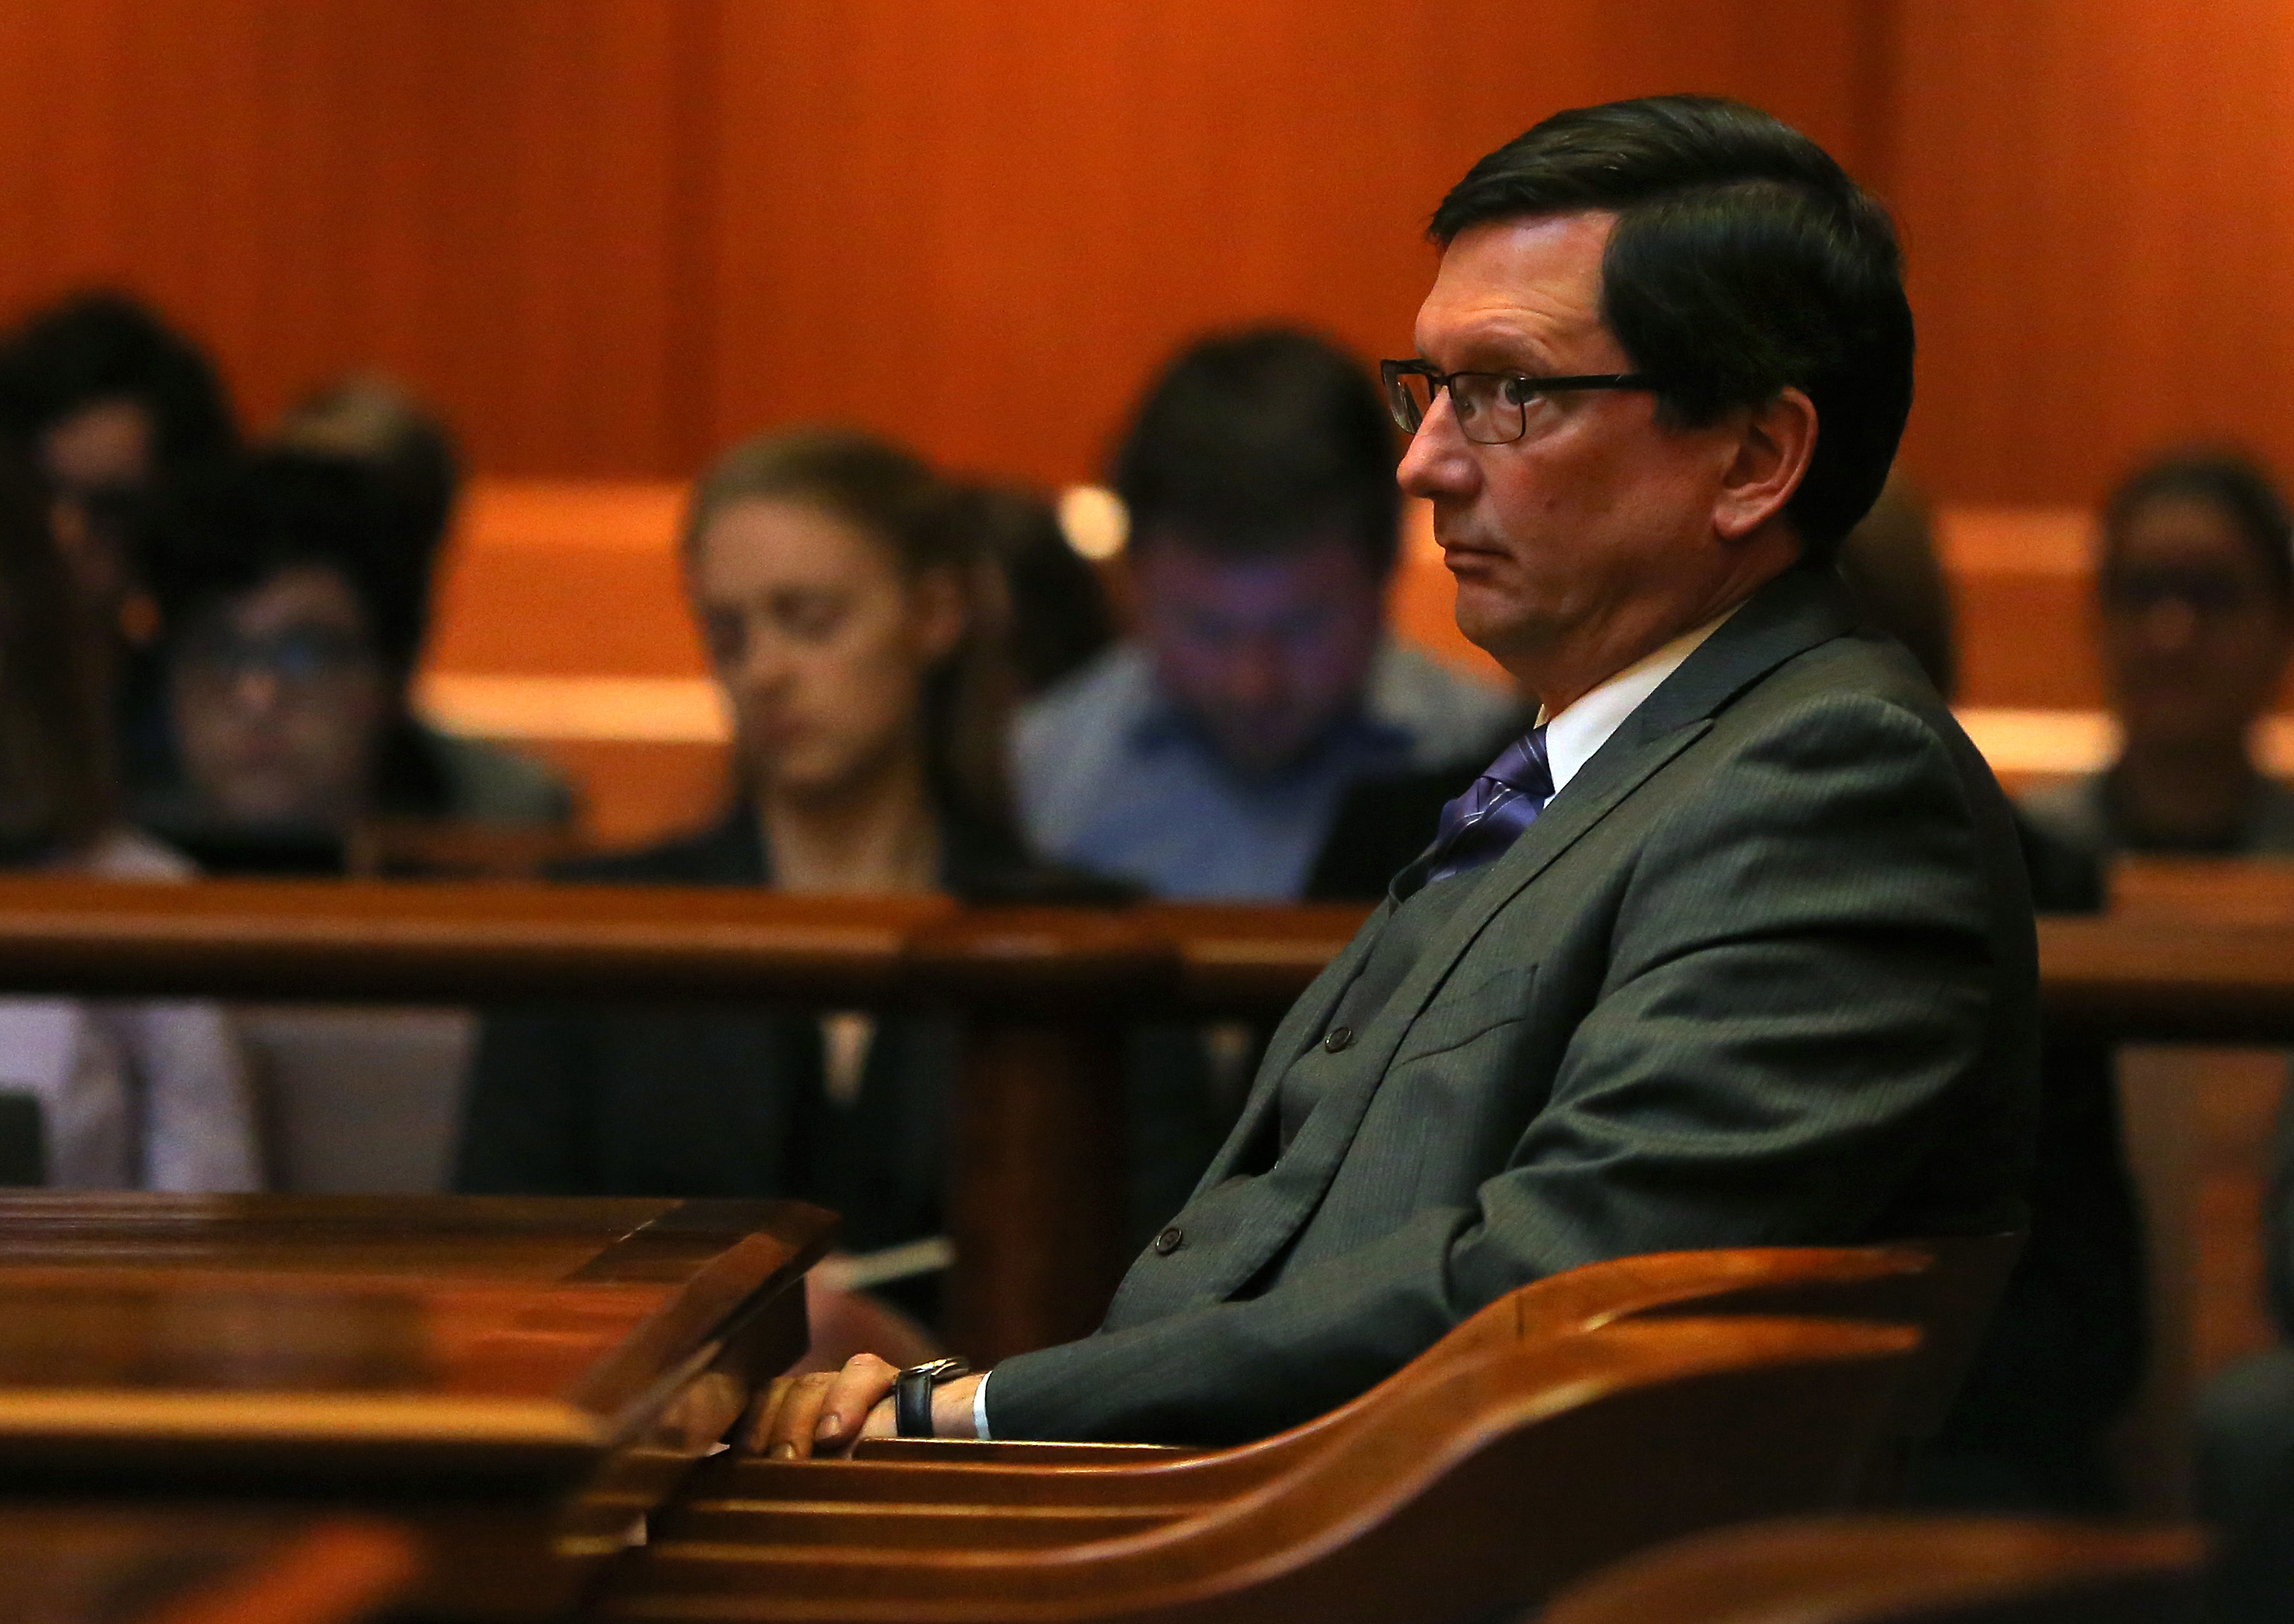 Boston, MA - 4/24/18 - Judge Thomas Estes (cq) listens as his attorney addresses the court.In the case of Estes, arguments are made in front of the full court (cq) (5 justices) of the Supreme Judicial Court (cq), in the John Adams Courthouse (cq). Arguing for the the Committee on Judicial Conduct (cq) is attorney Howard Neff (cq). For Estes is David Hoose (cq). Also in court is former court worker Tammy Cagle (cq), with whom Estes admits to having an affair. He attorney is Leonard Kesten (cq).Photo by Pat Greenhouse/Globe StaffTopic: 25estesReporter: Maria Cramer